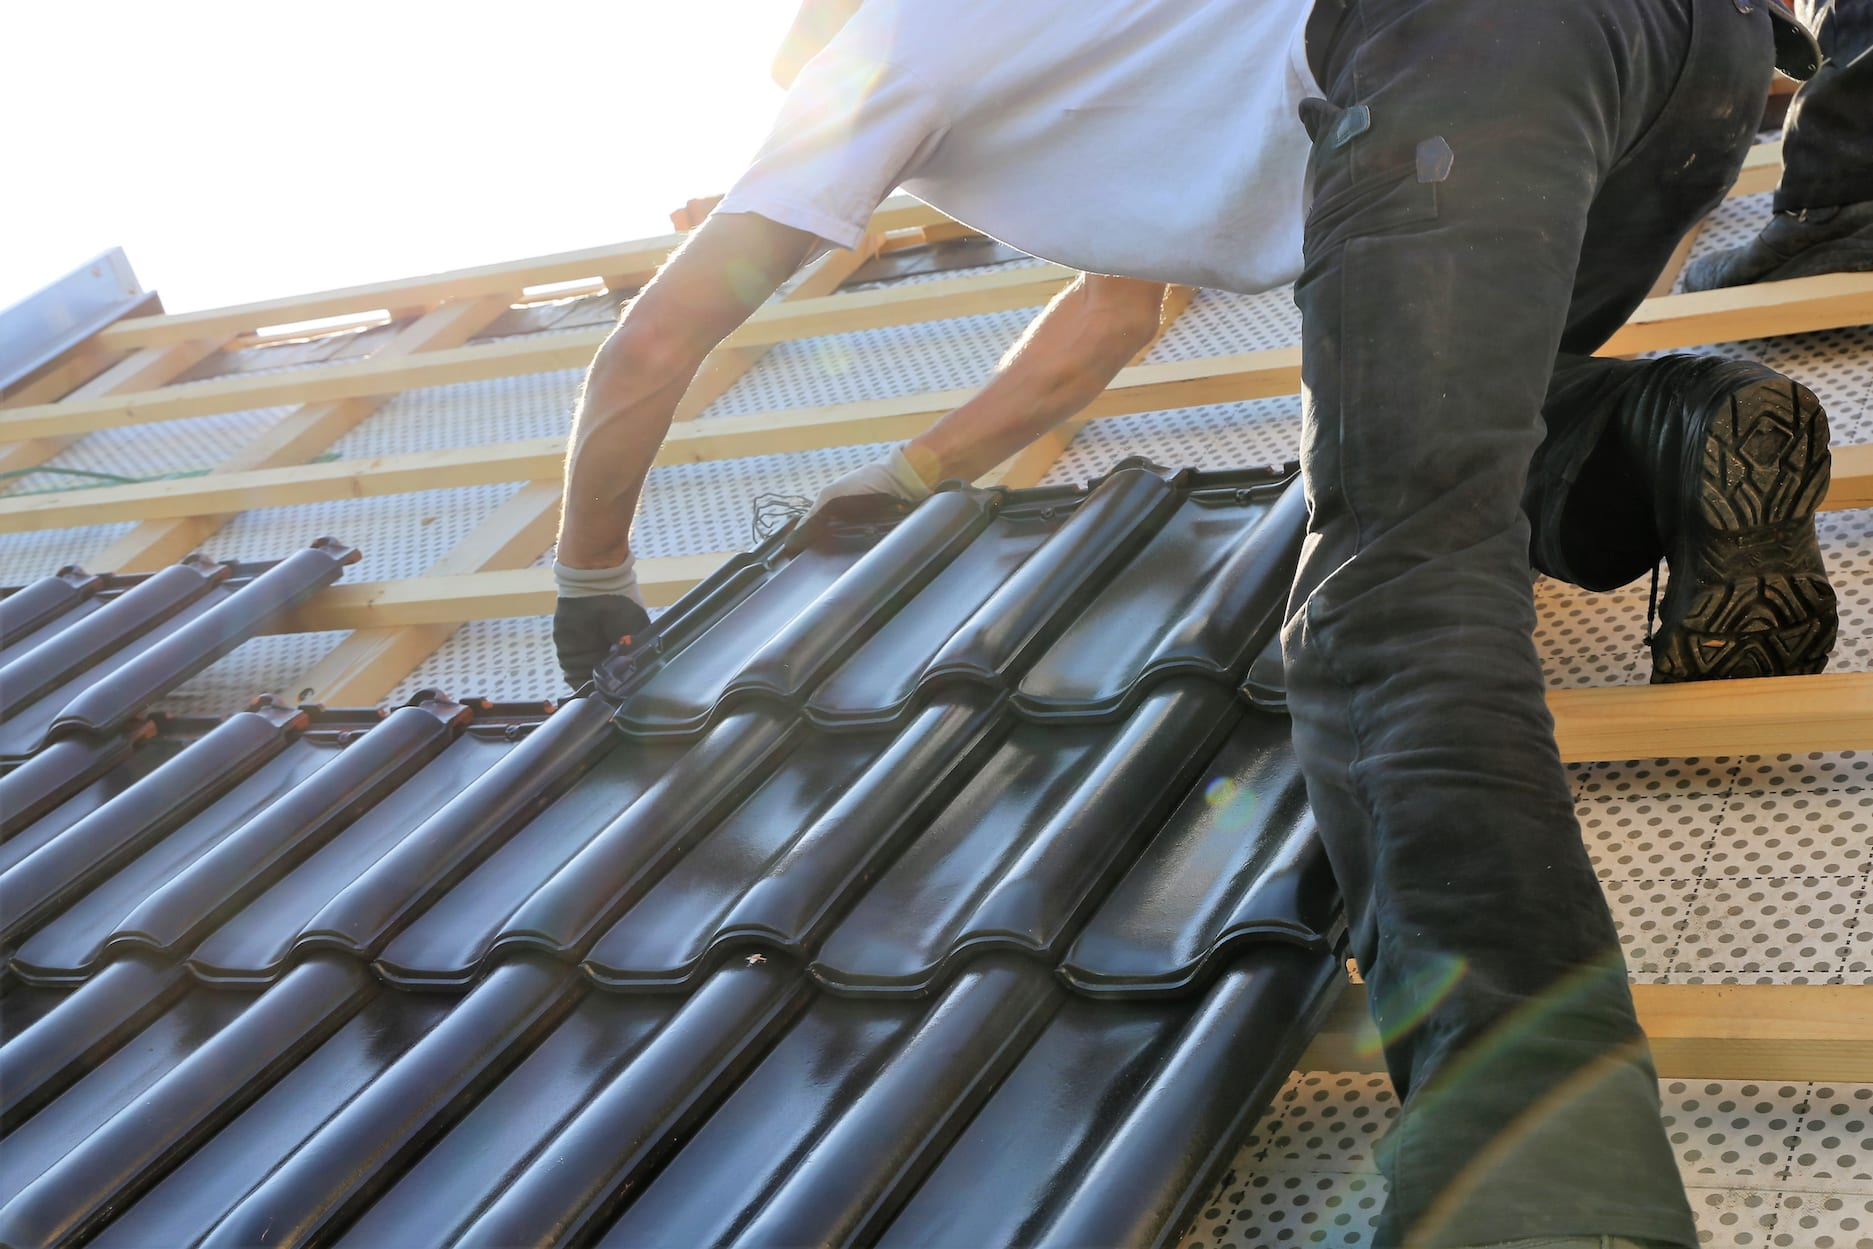 2 Roofing Firms Working In Pierce County Fined For Unsafe Working Conditions